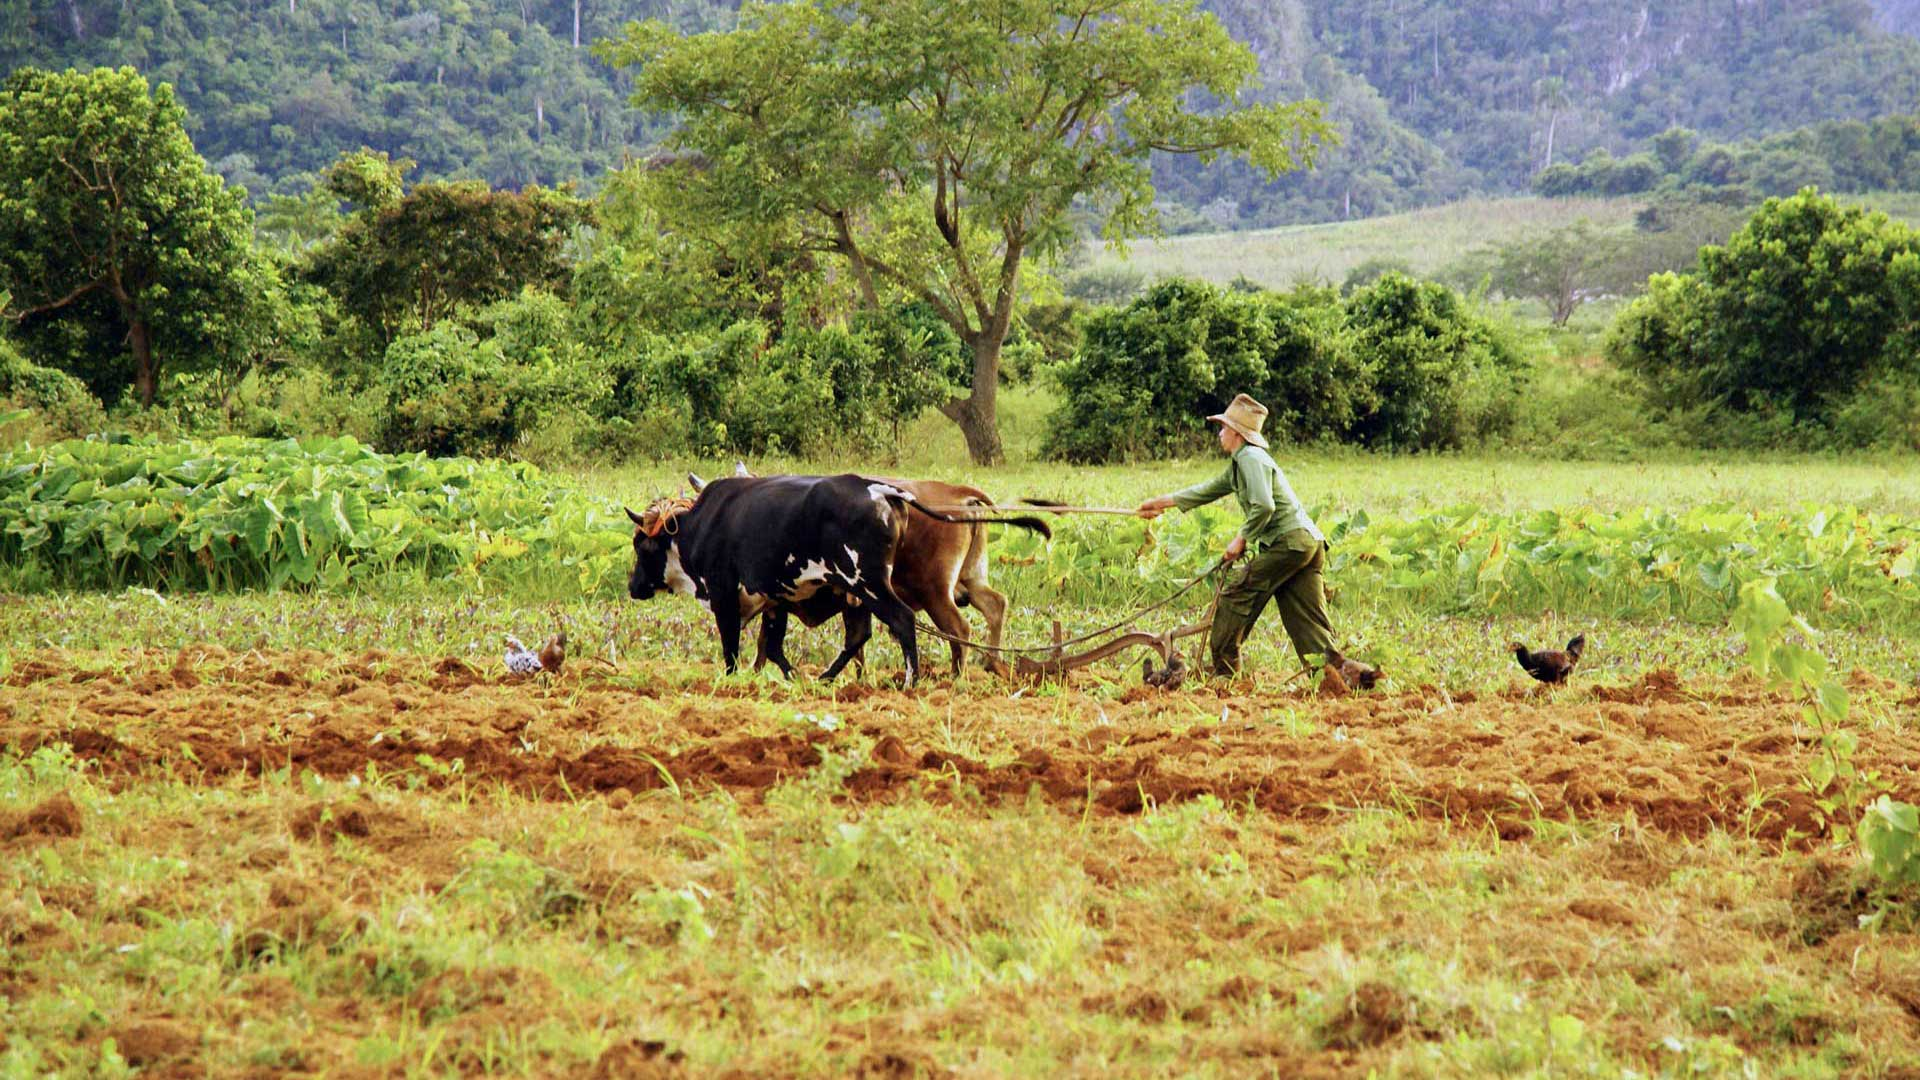 Cubanese farmer at work. Photo by Ovidiu Balaj